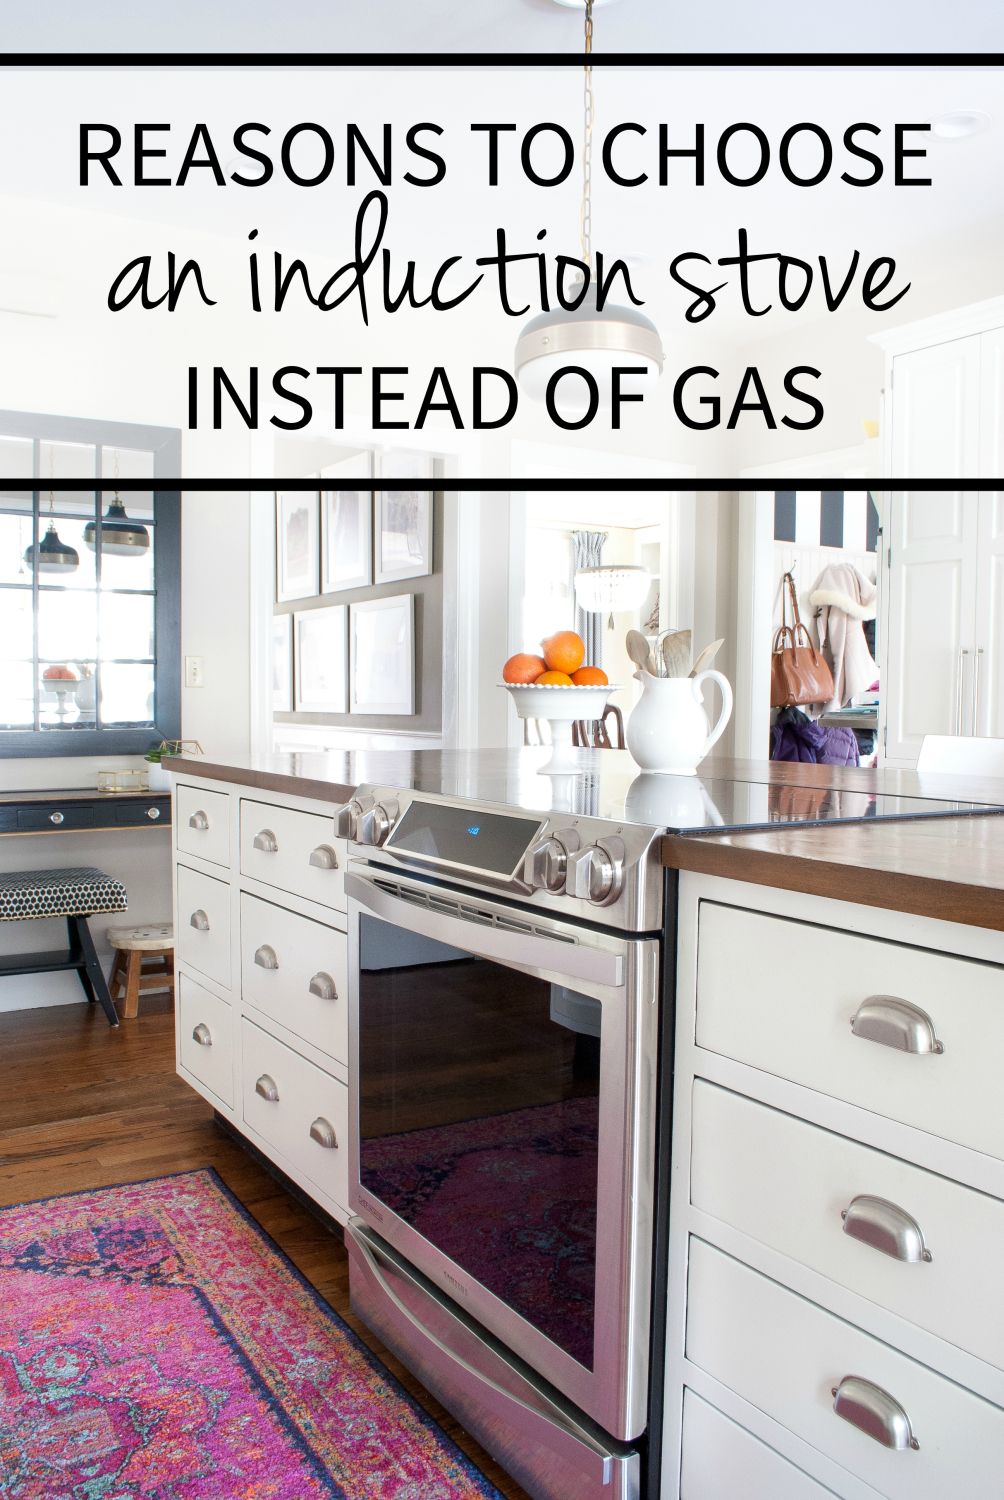 things to consider when weighing gas vs induction stoves and why induction often comes out